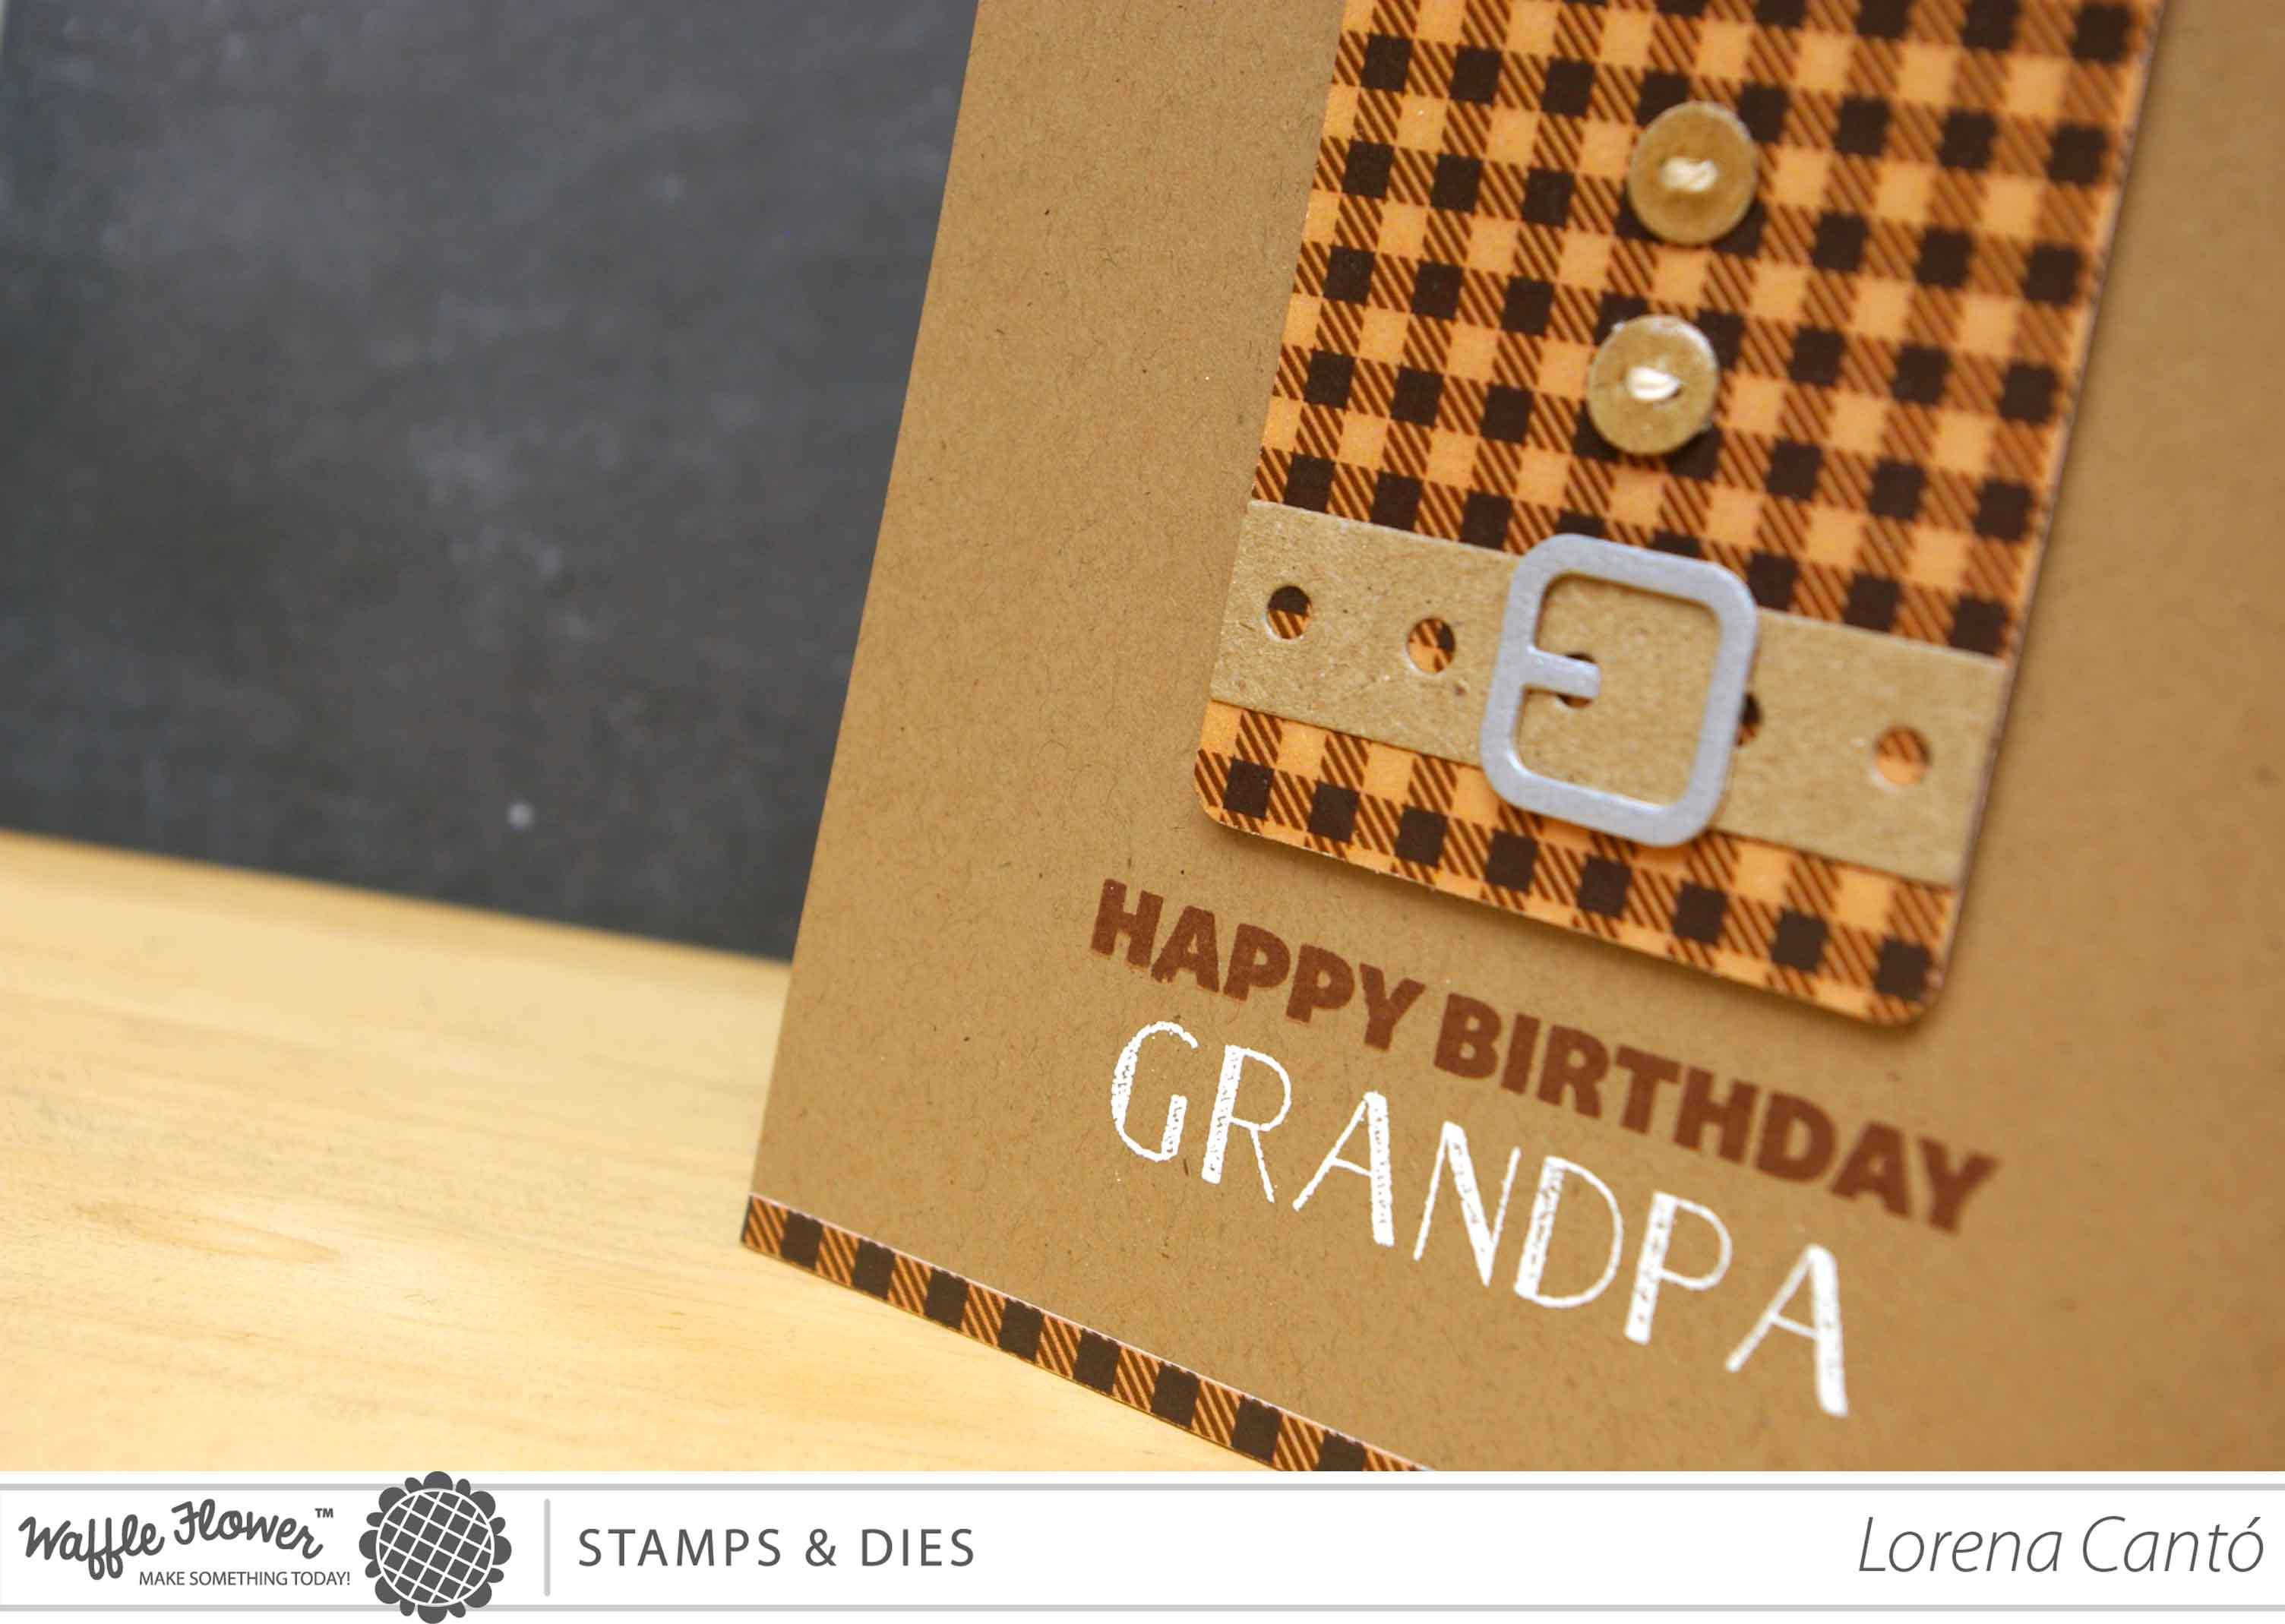 Grandpa birthday card with waffle flower crafts and a winner grandpa 2 bookmarktalkfo Gallery